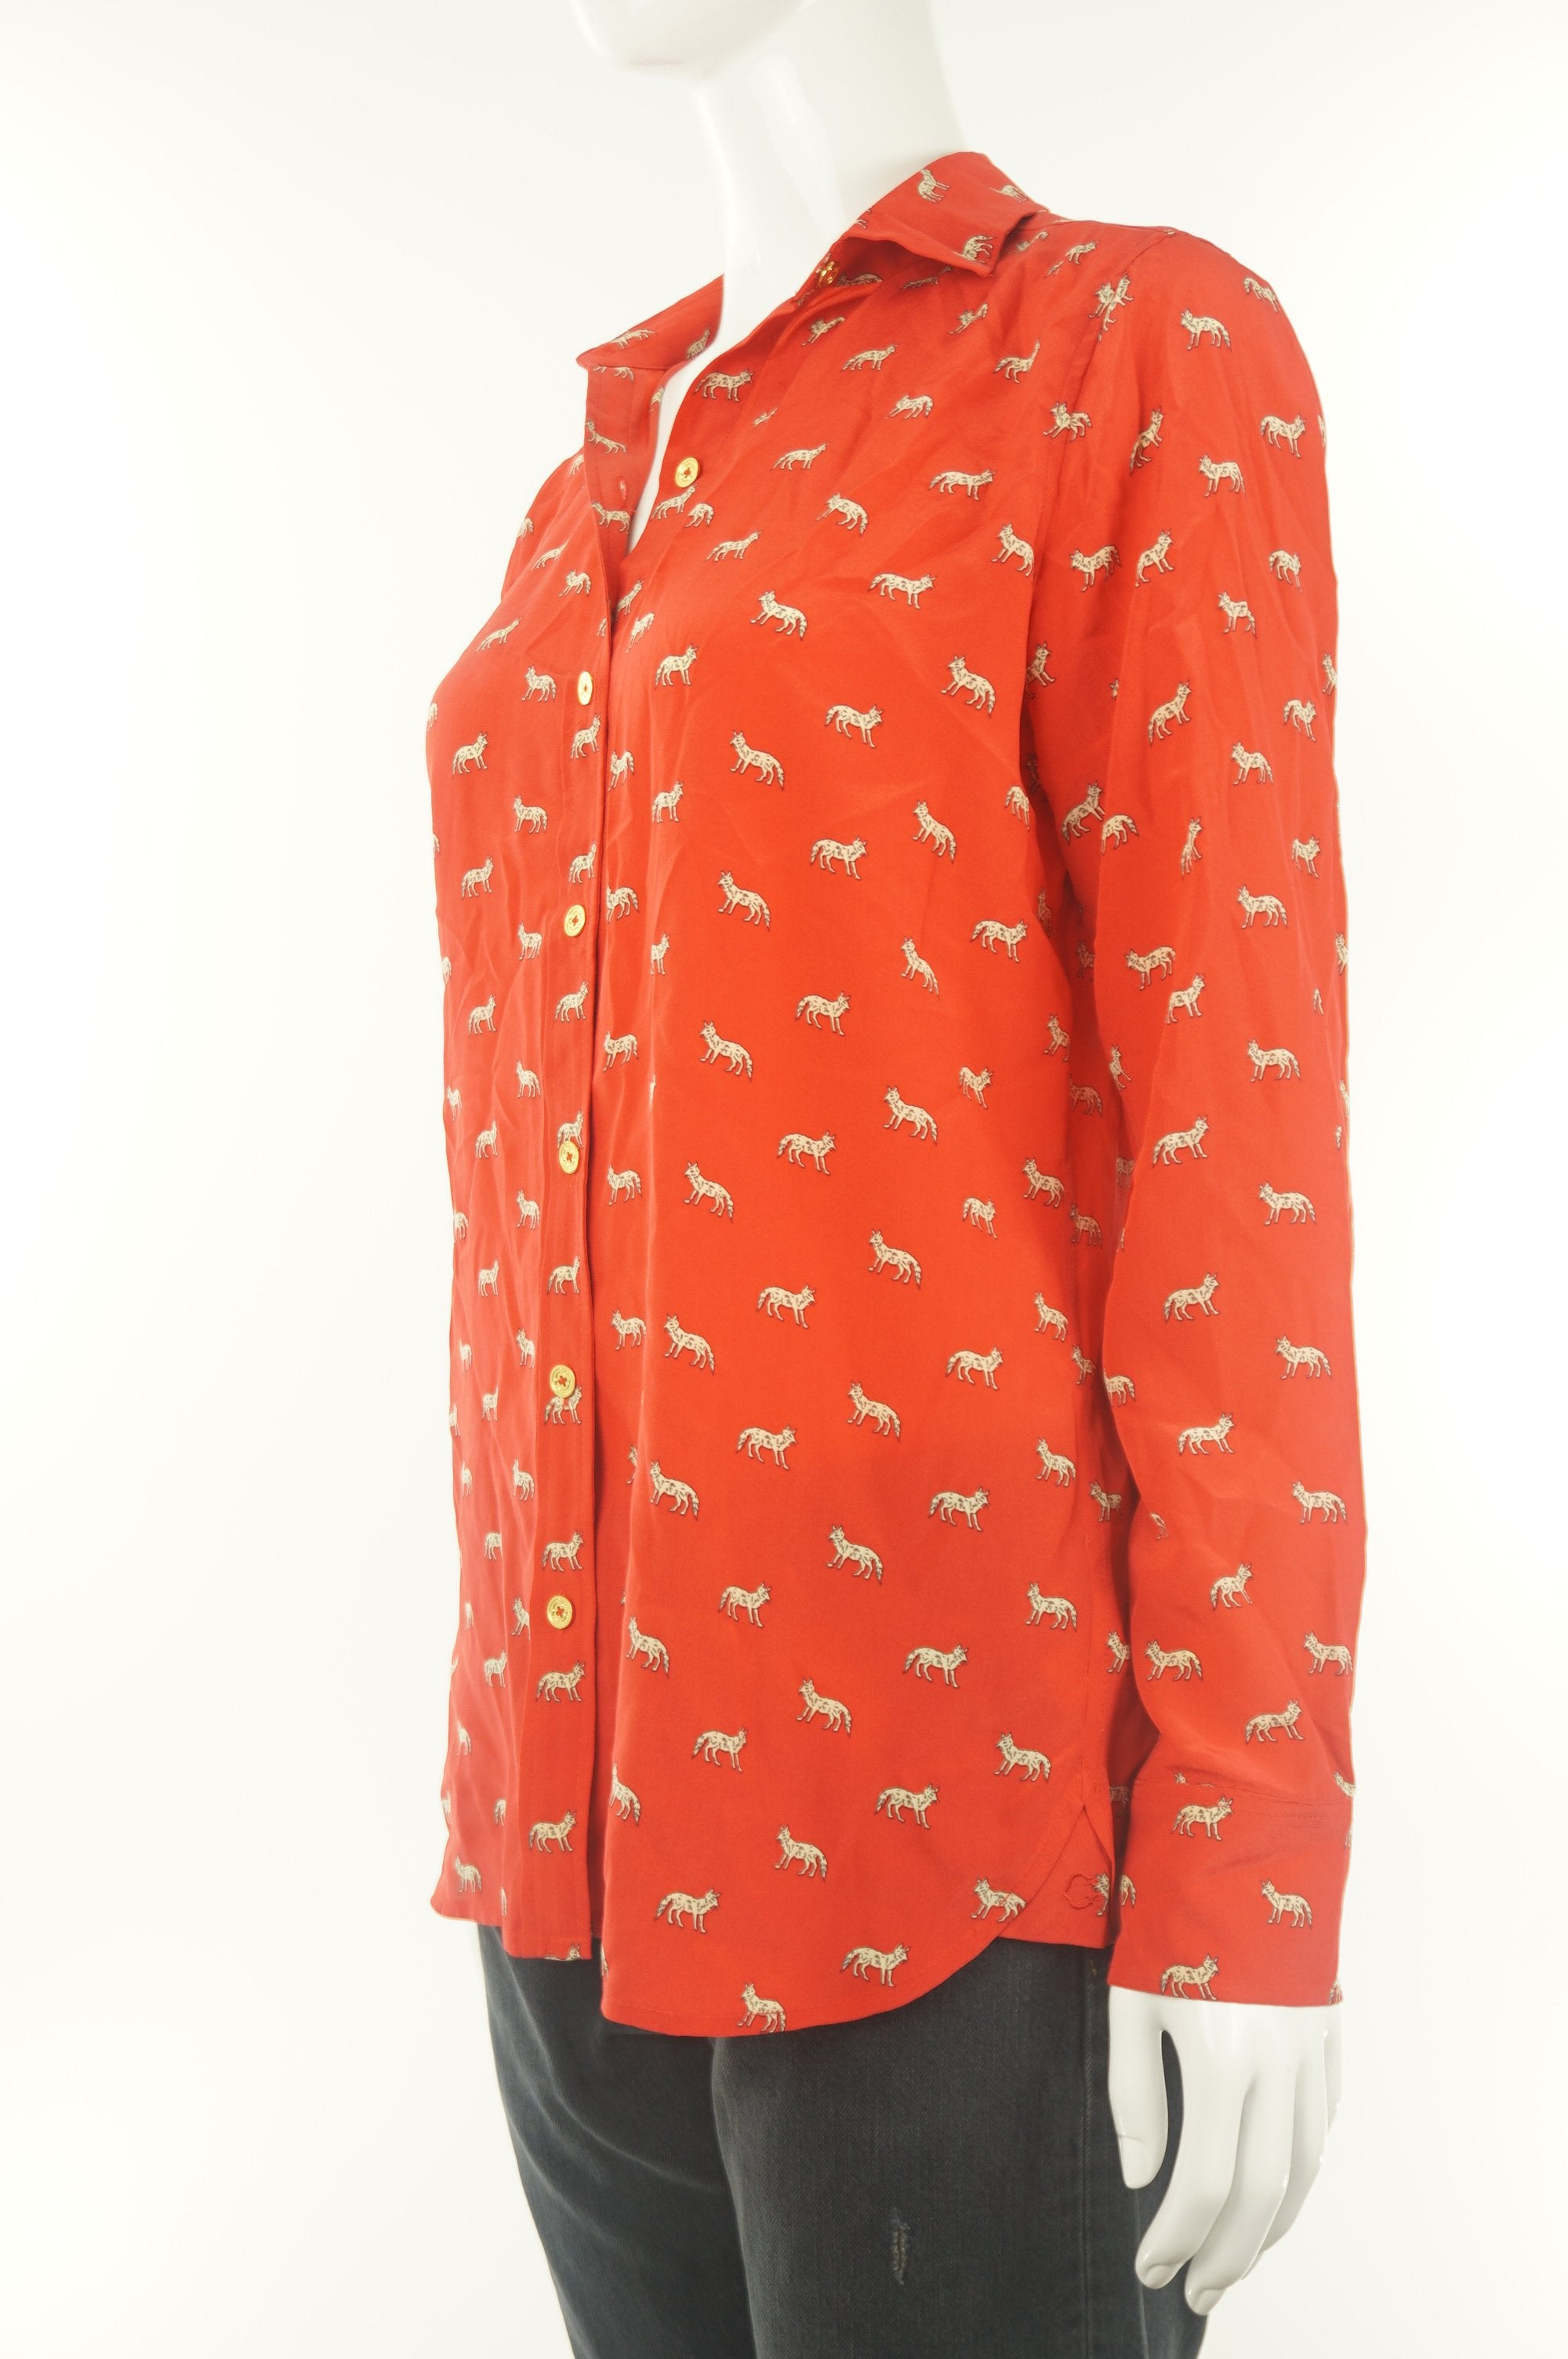 C. Wonder Silk Button Up Shirt Top, Pure silk shirt with cute animal print., Red, 100% silk,